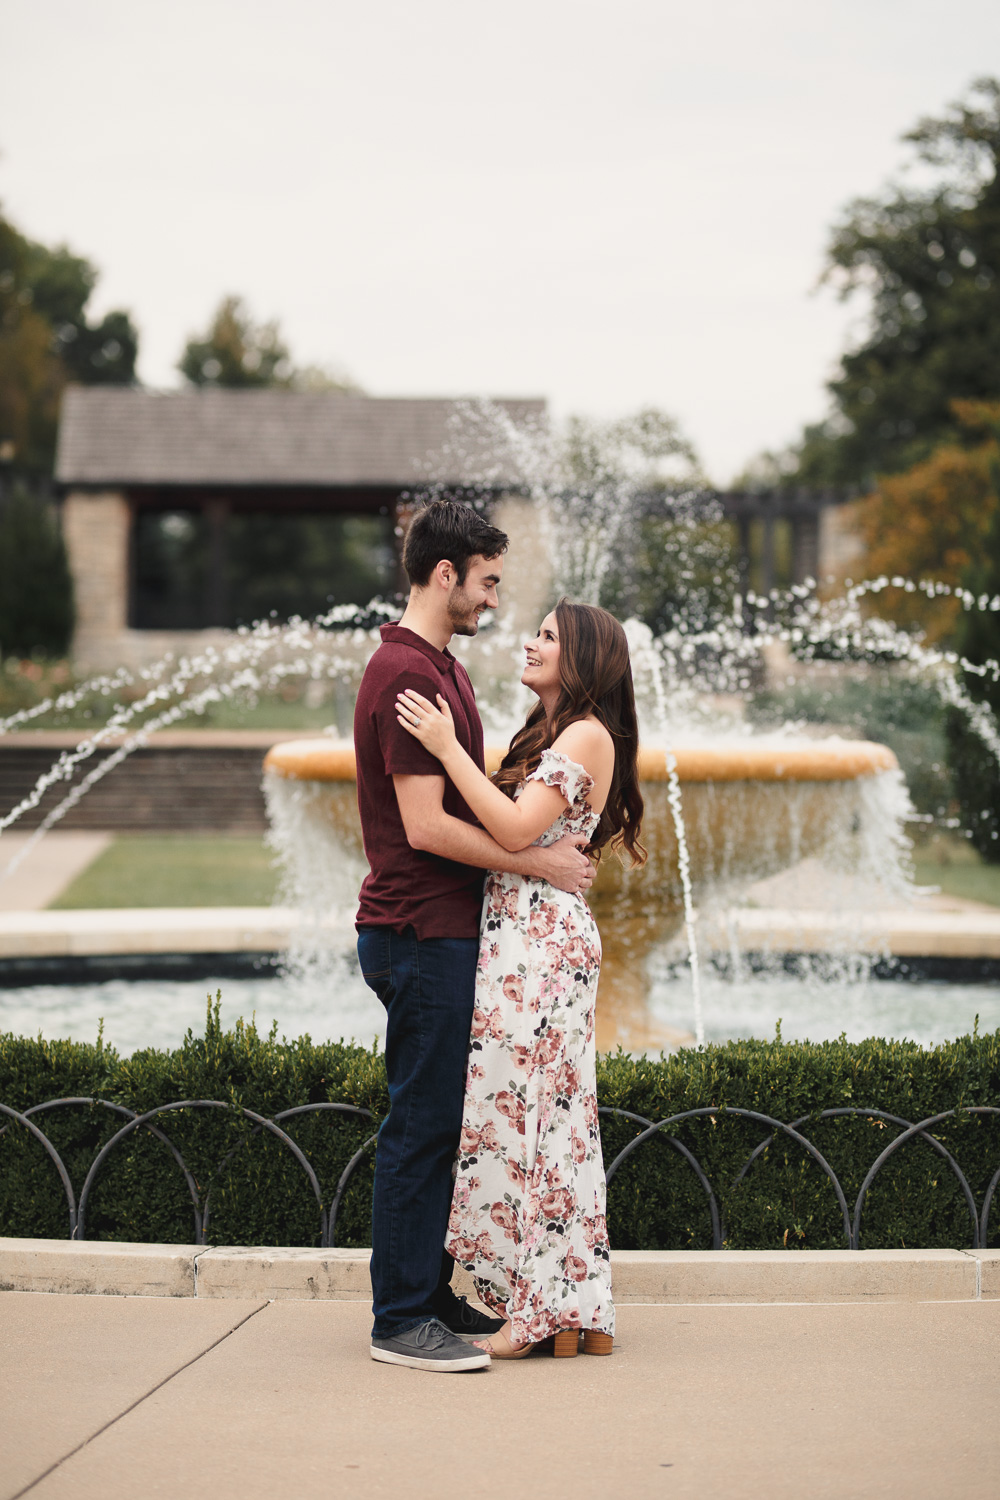 Beginning of Fall_Bliss_Engagement_Kansas_City_Kelsey_Diane_Photography_1-9496.jpg